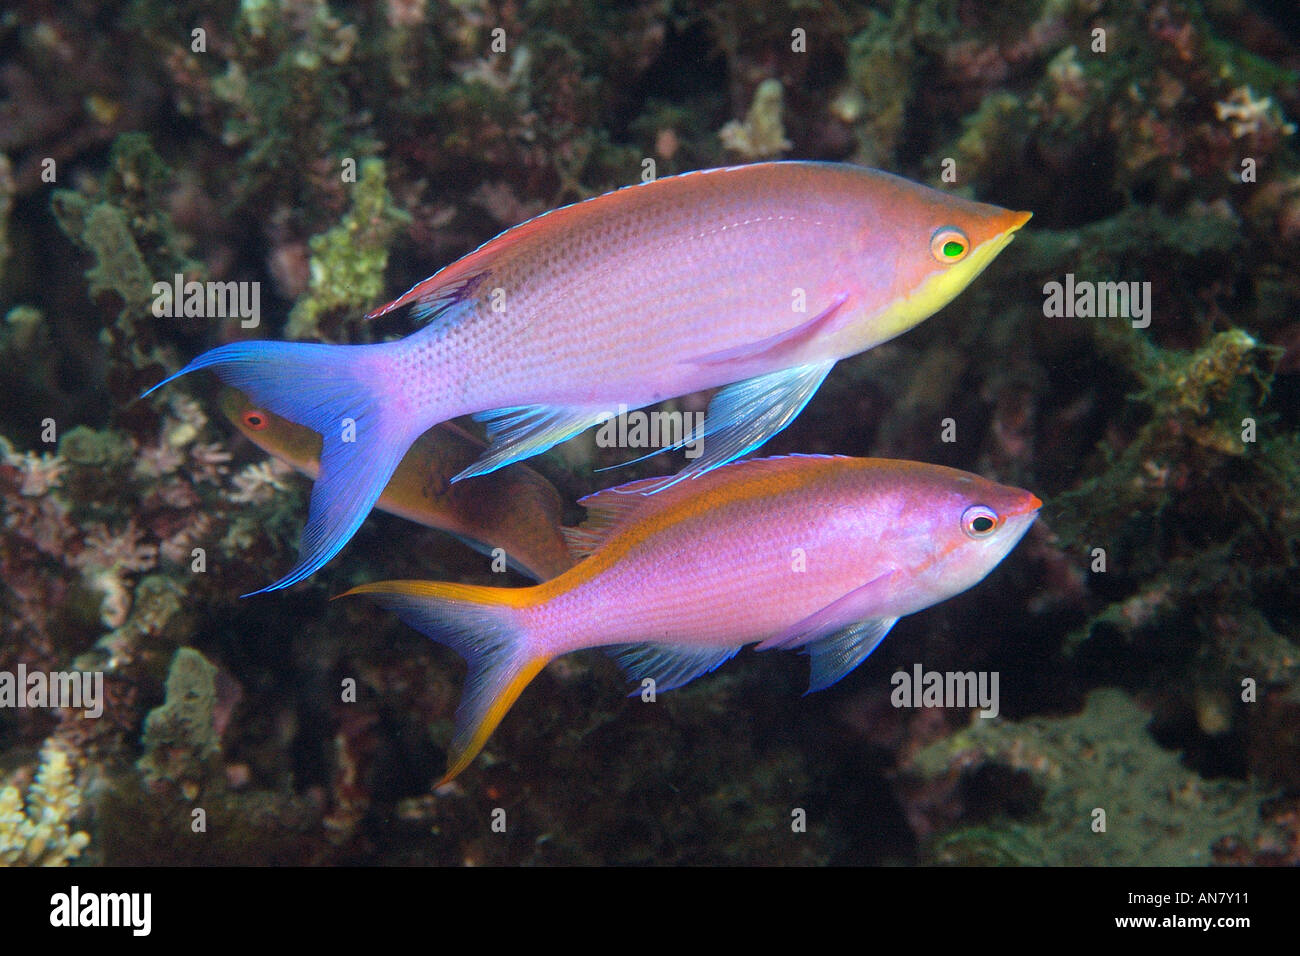 Photos of cods, grouper and basslets Family Serranidae